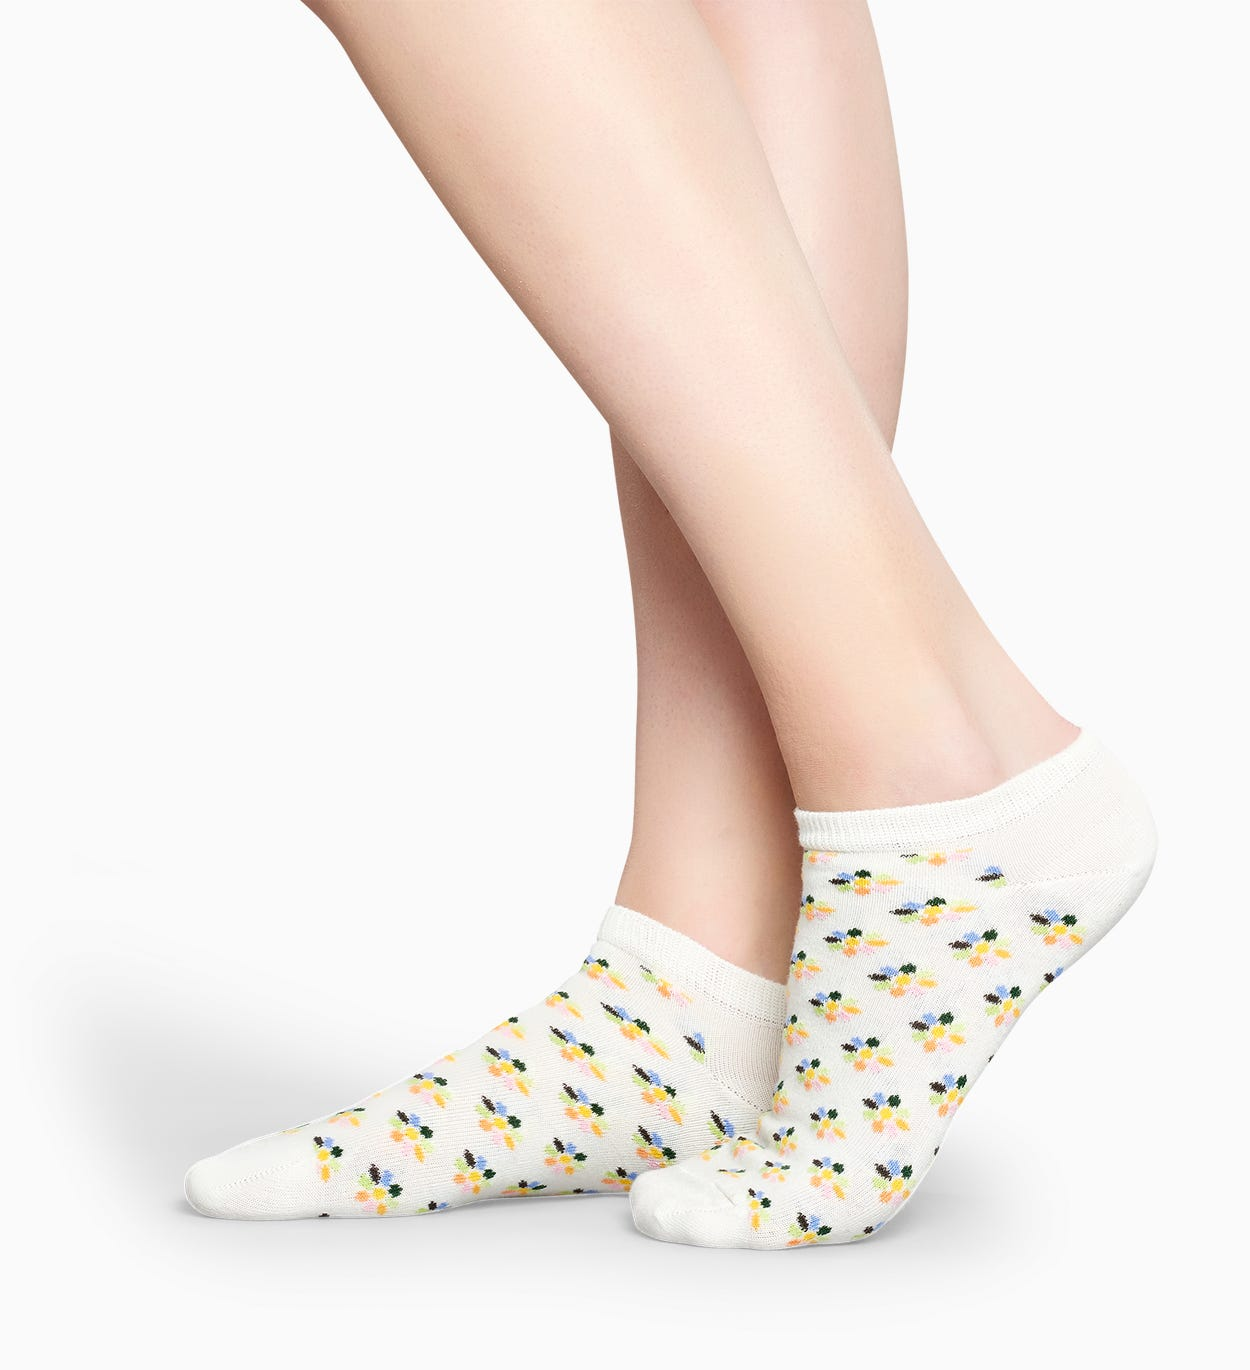 Calzini Corti Fiore Bianchi: Mini Flower | Happy Socks